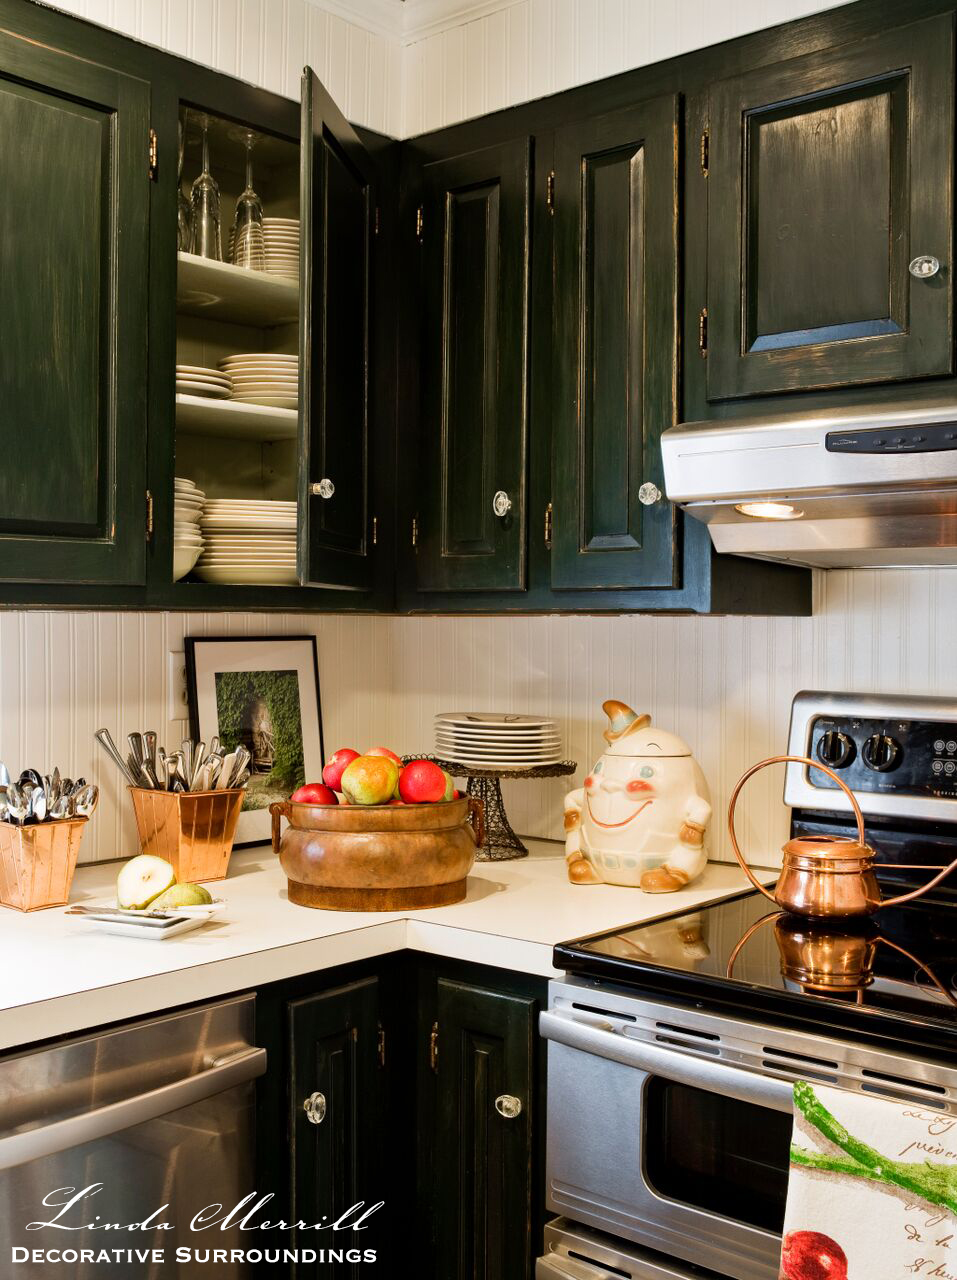 French country kitchen green - French Country Kitchen With Burlap Counter Skirt Copper Pots Green Painted Cabinets Black